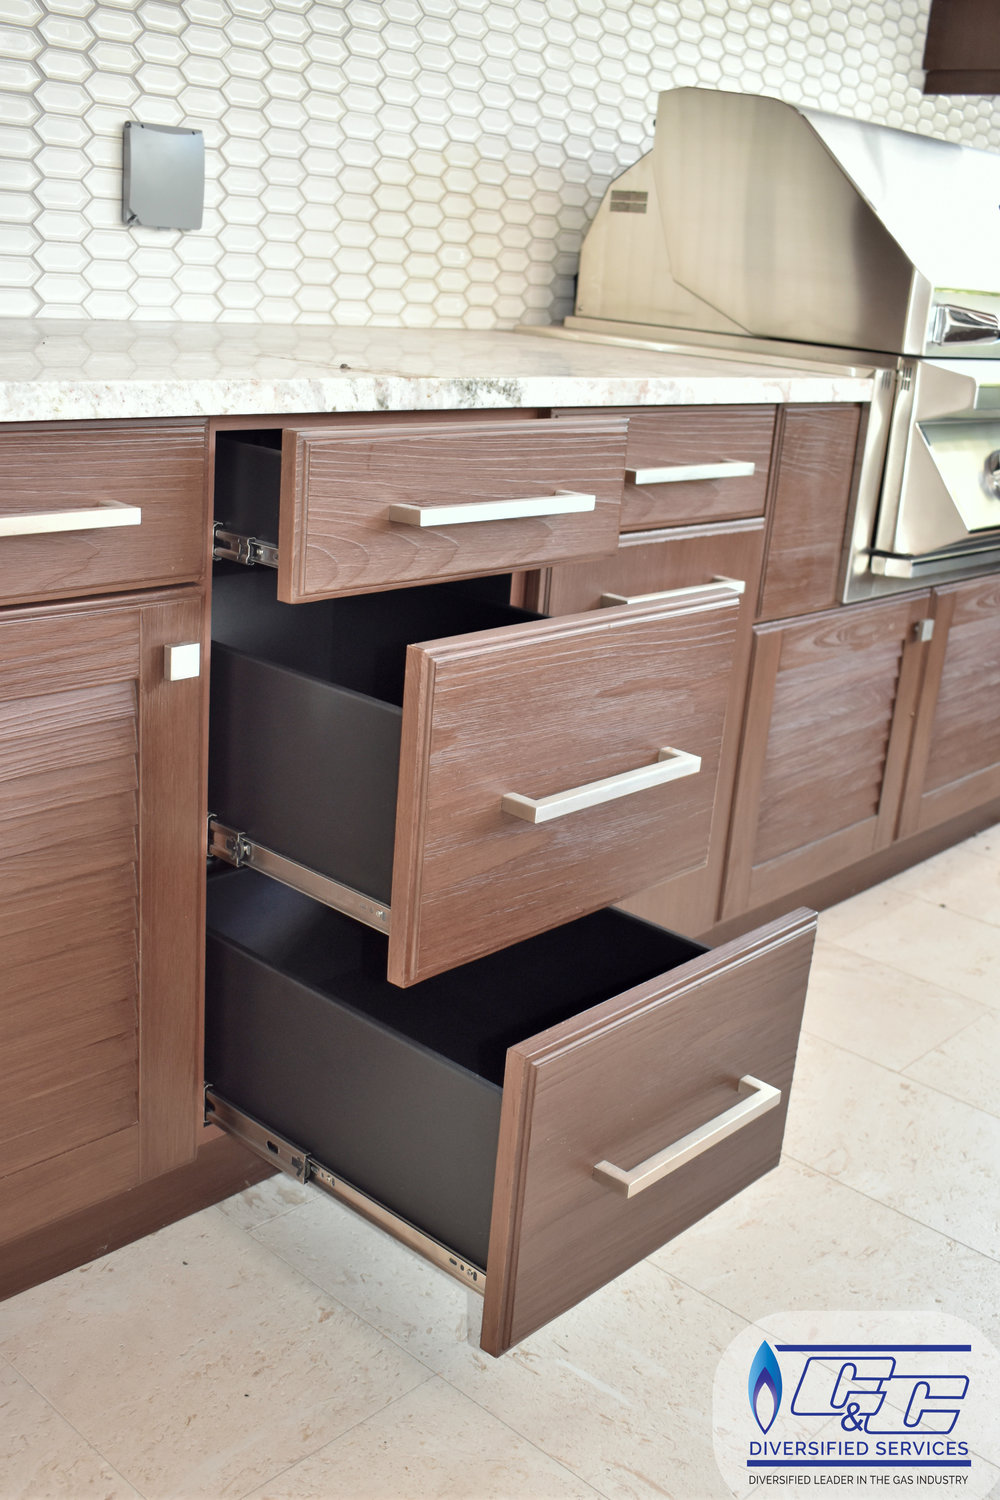 NatureKast Weatherproof Cabinetry - Drawers